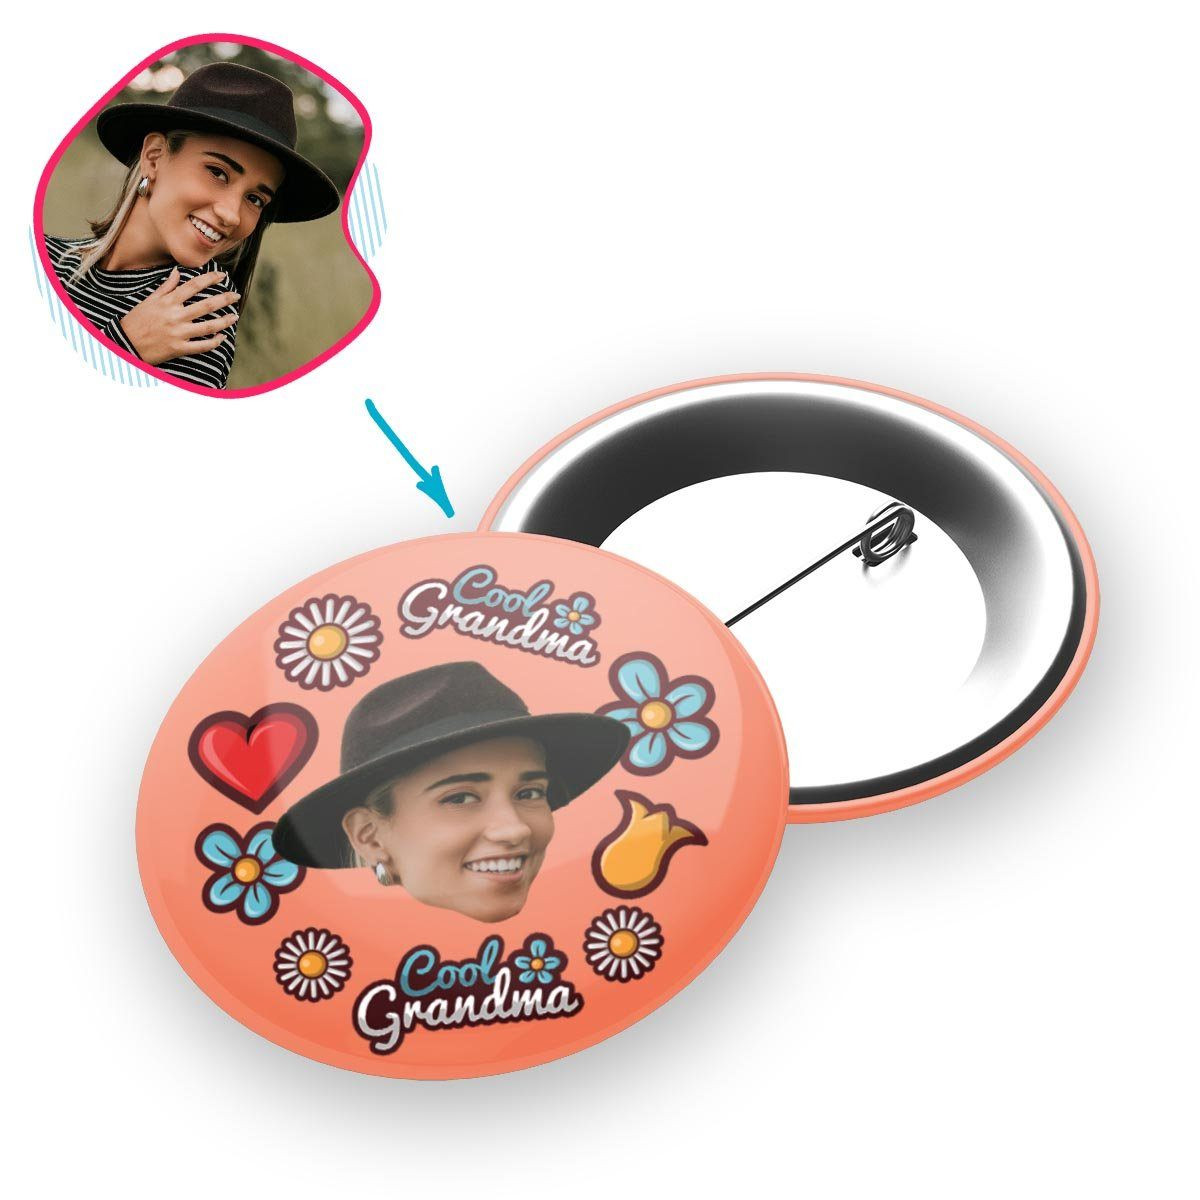 salmon Cool Grandmother pin personalized with photo of face printed on it